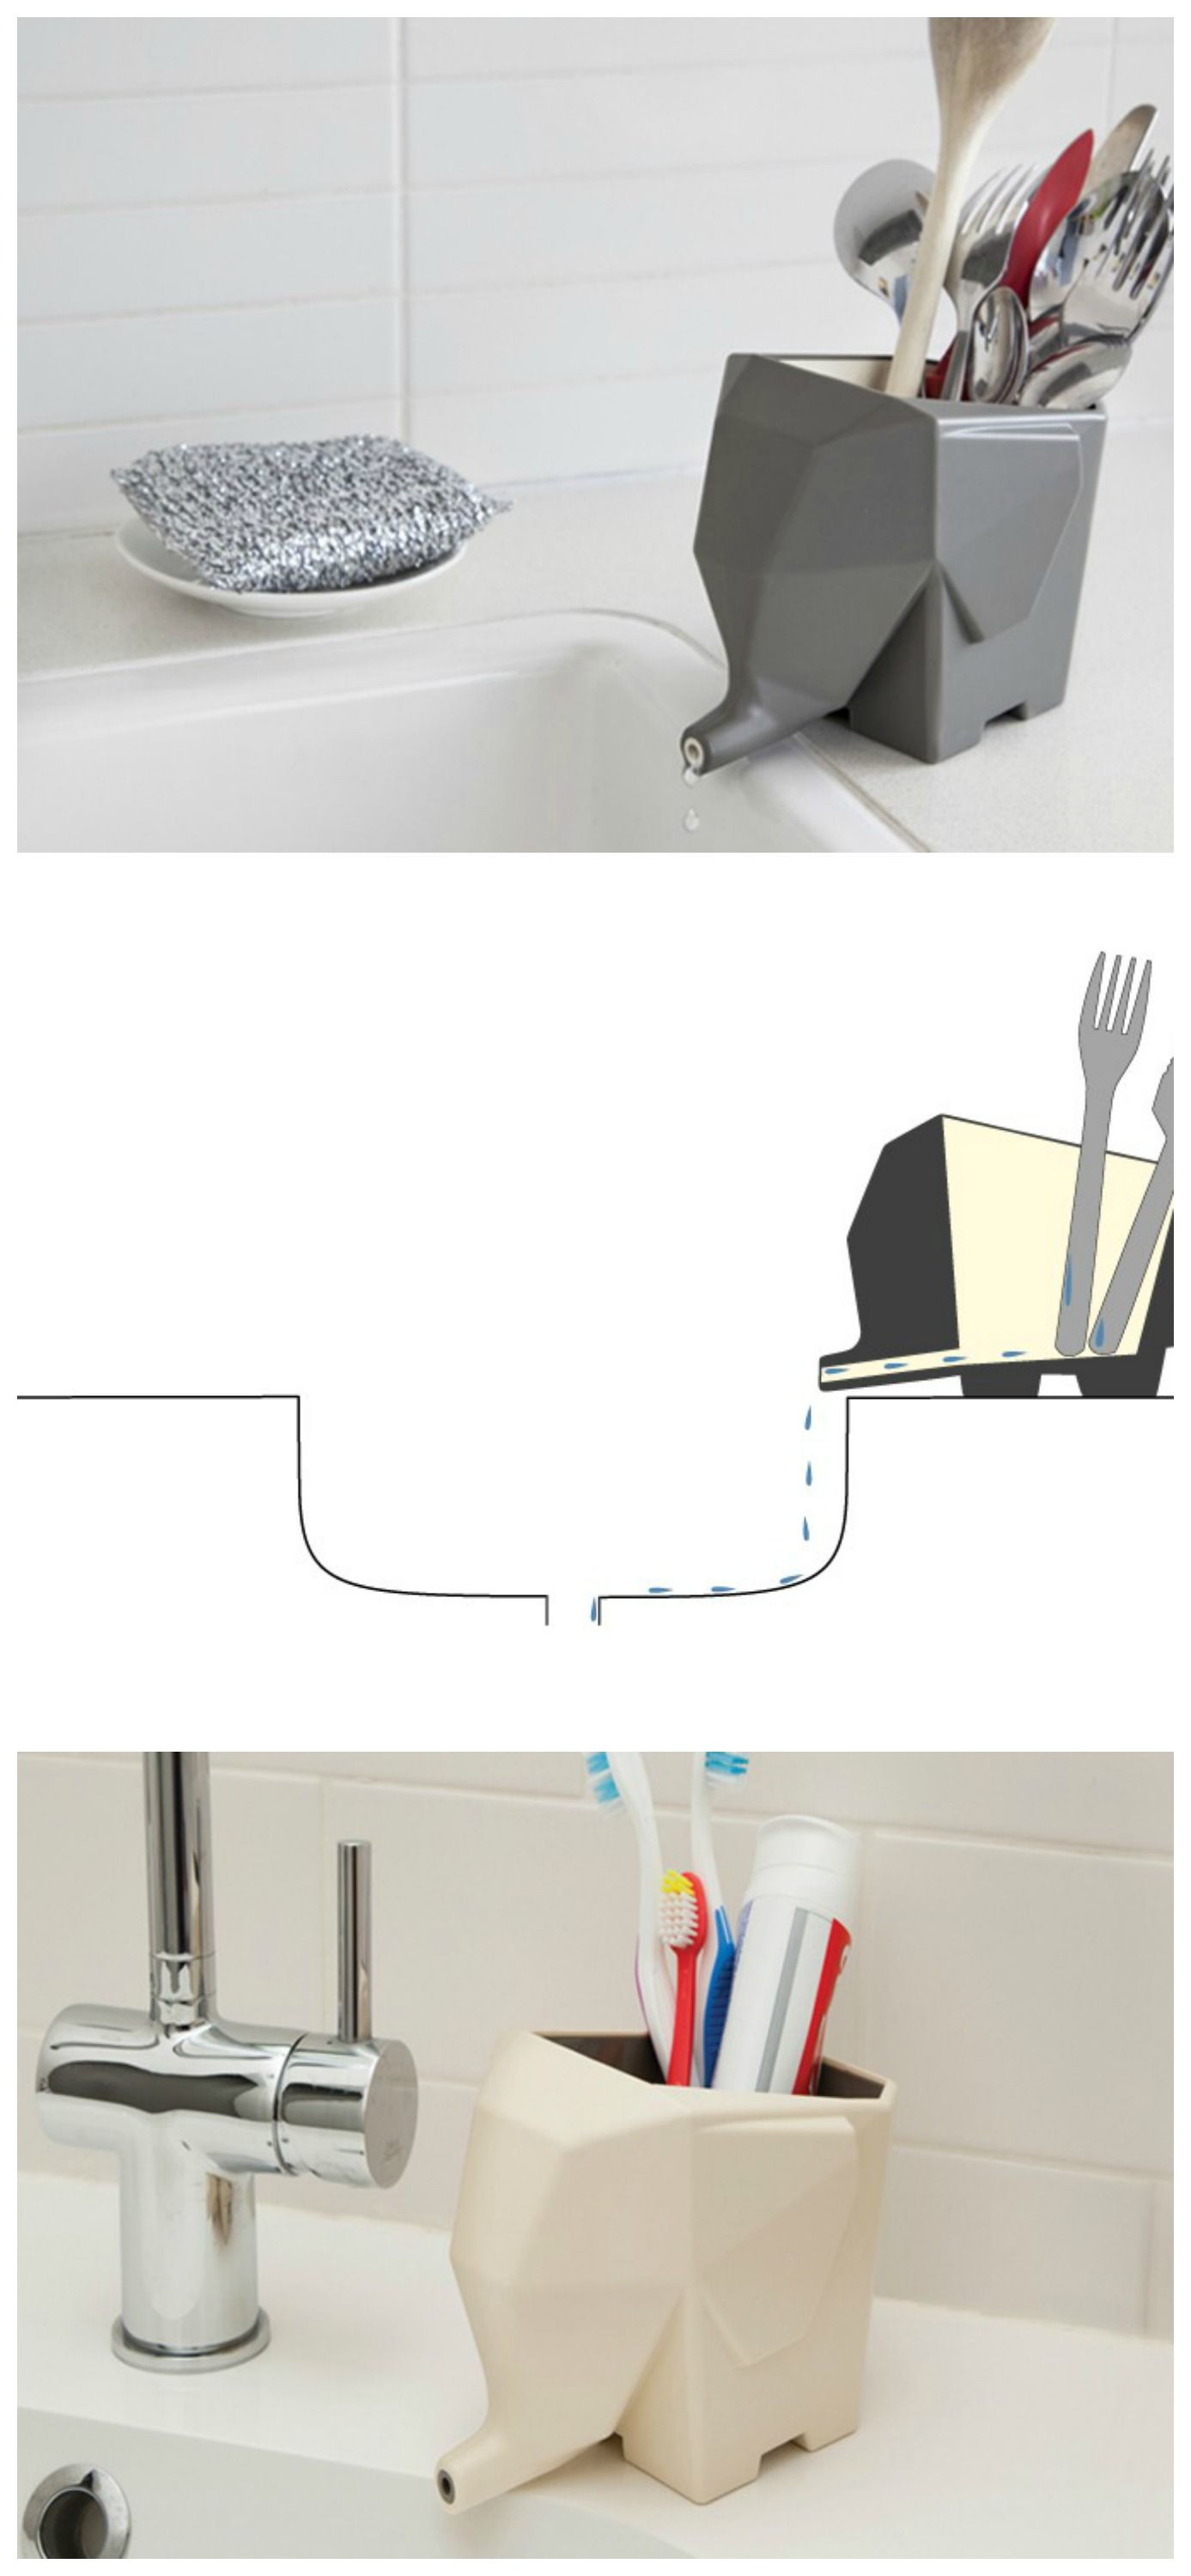 Genius Kitchen Idea! Cutlery drainer! Great kitchen gadget ...